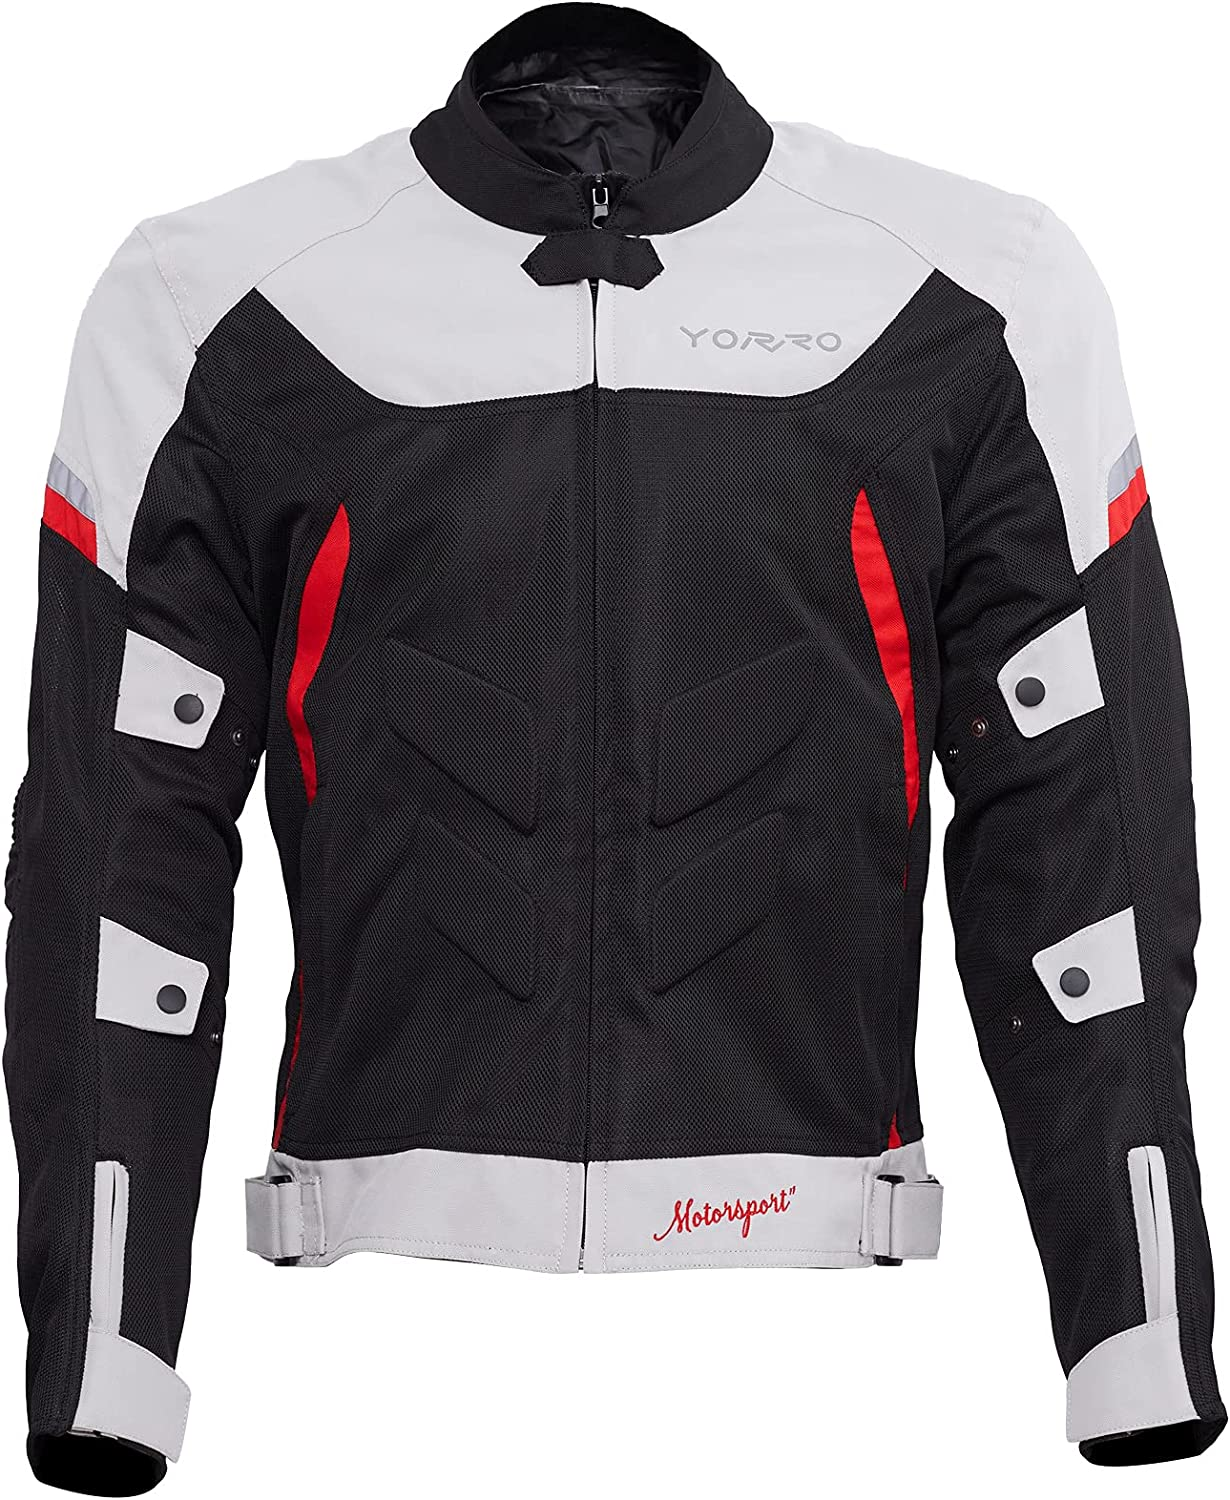 Autumn Winter Mens Easy-to-use Motorcycle depot Jackets Waterproof Brea Armor with